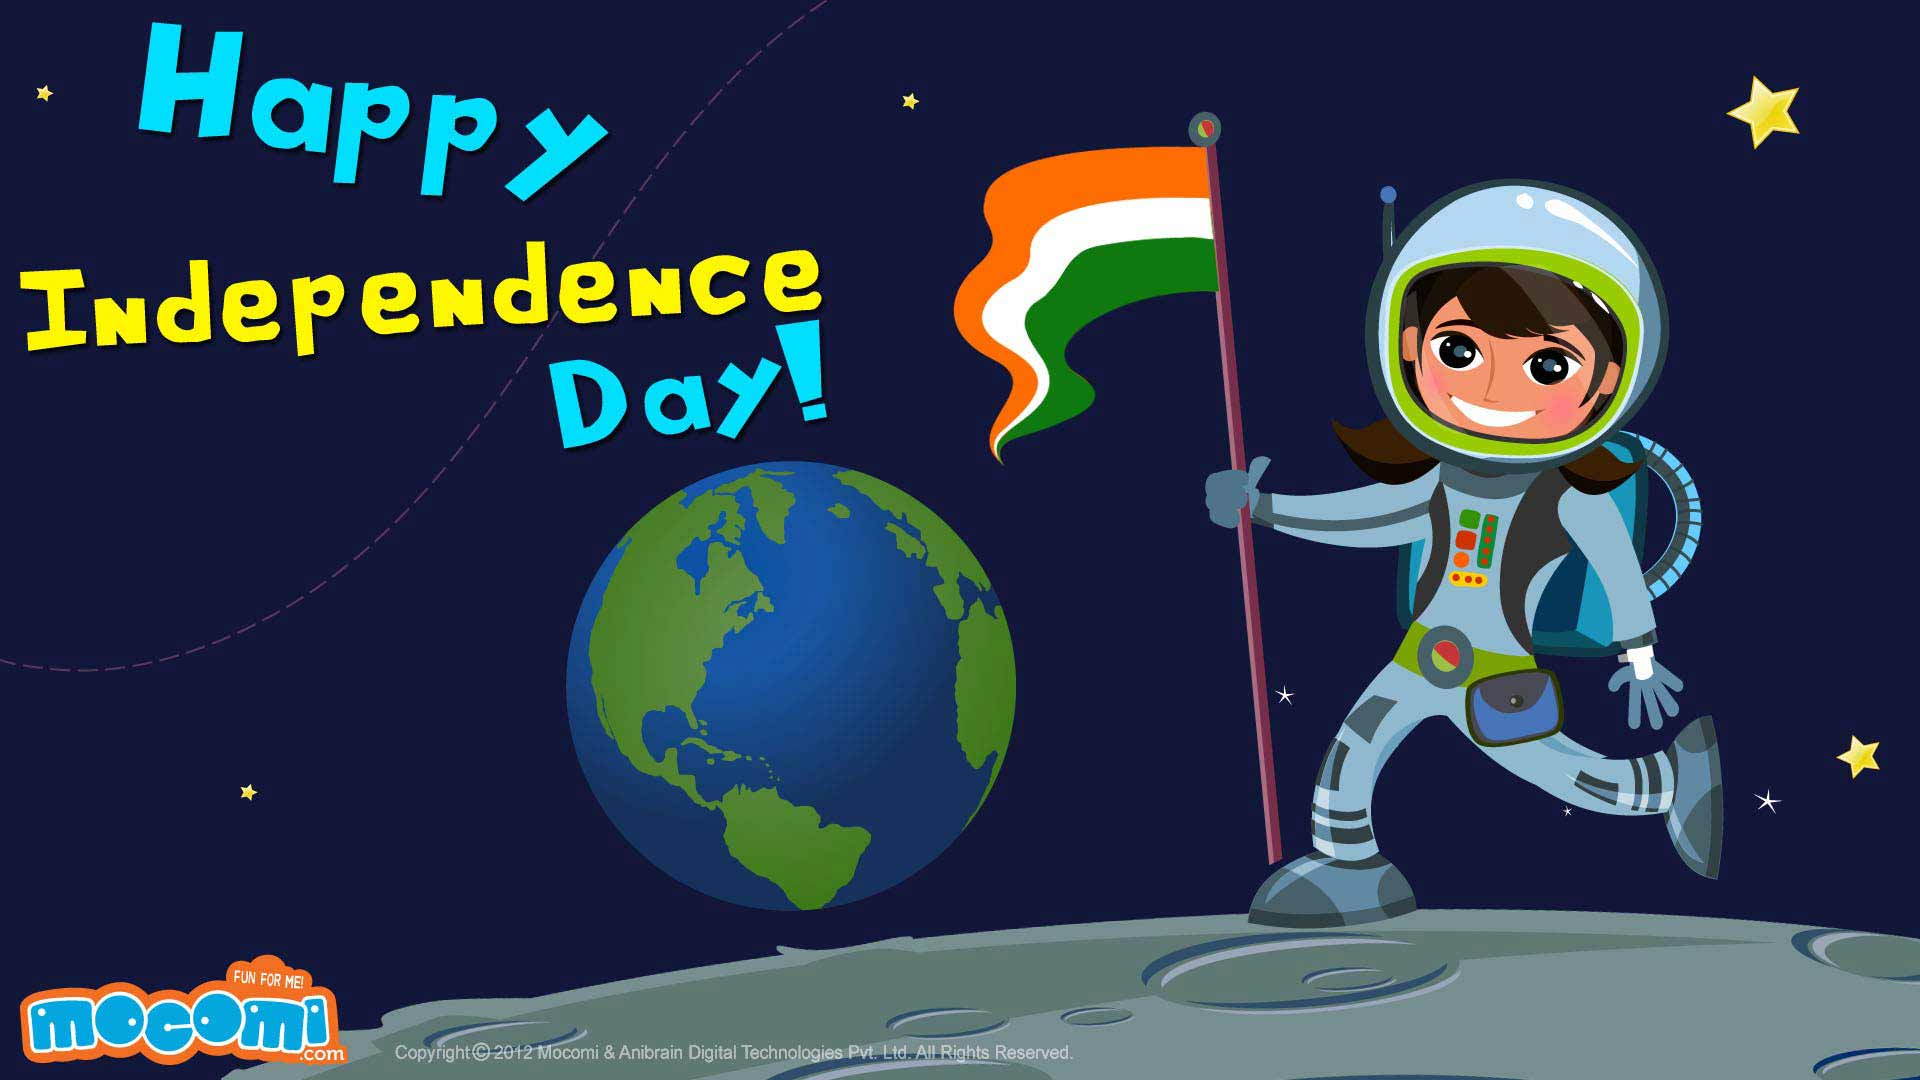 Happy Independence Day – On The Moon